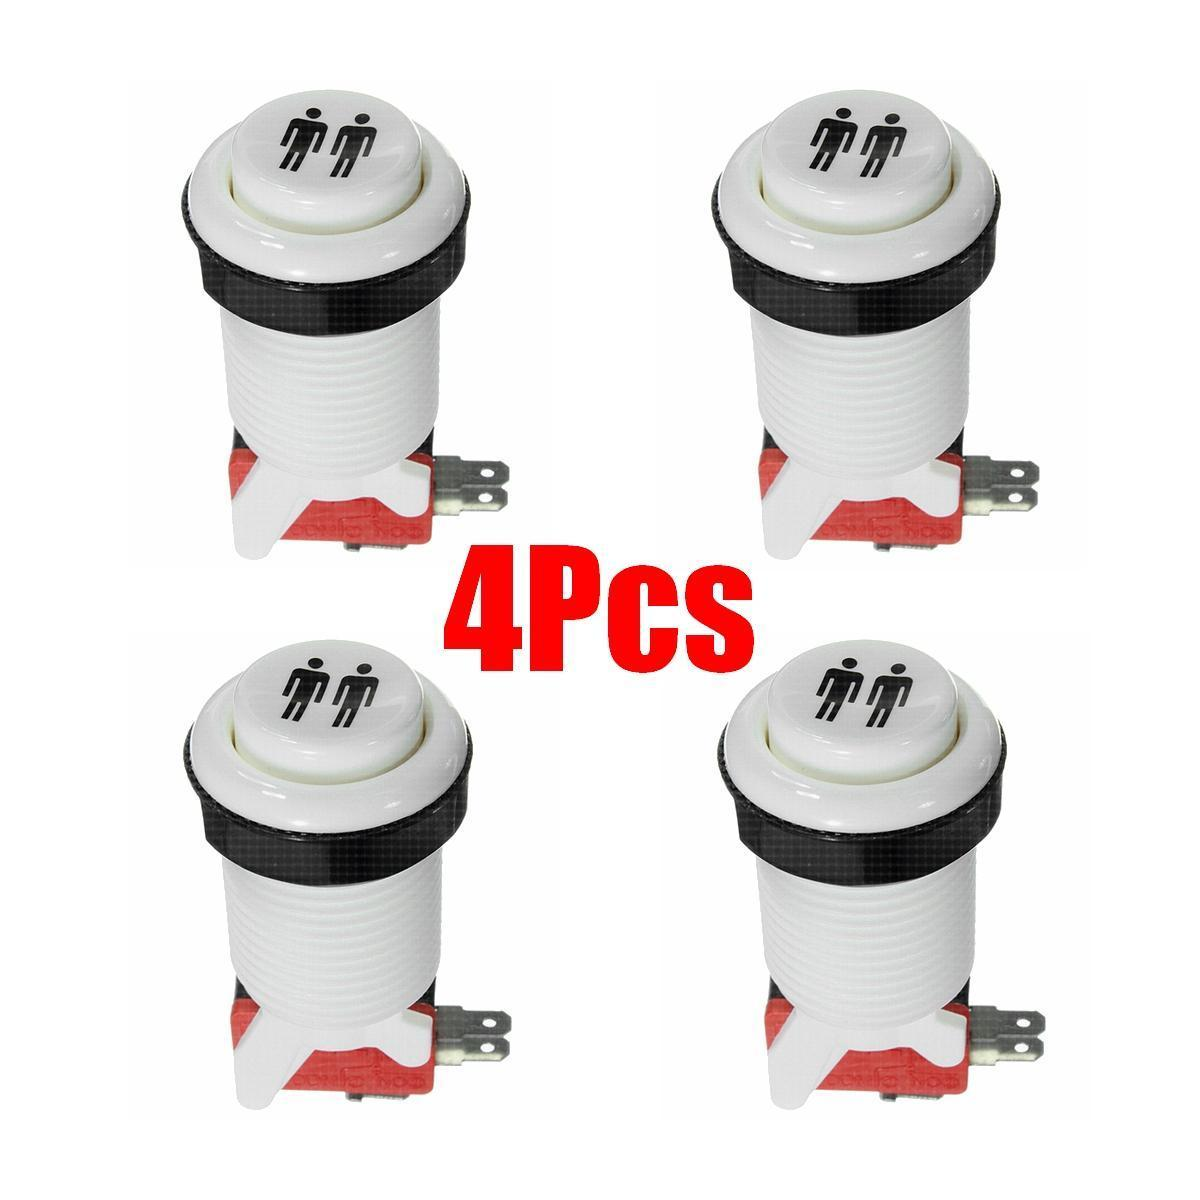 4pcs Happ Arcade Multicade MAME Push Buttons Durable Jamma GameSwitch (Two  Player)